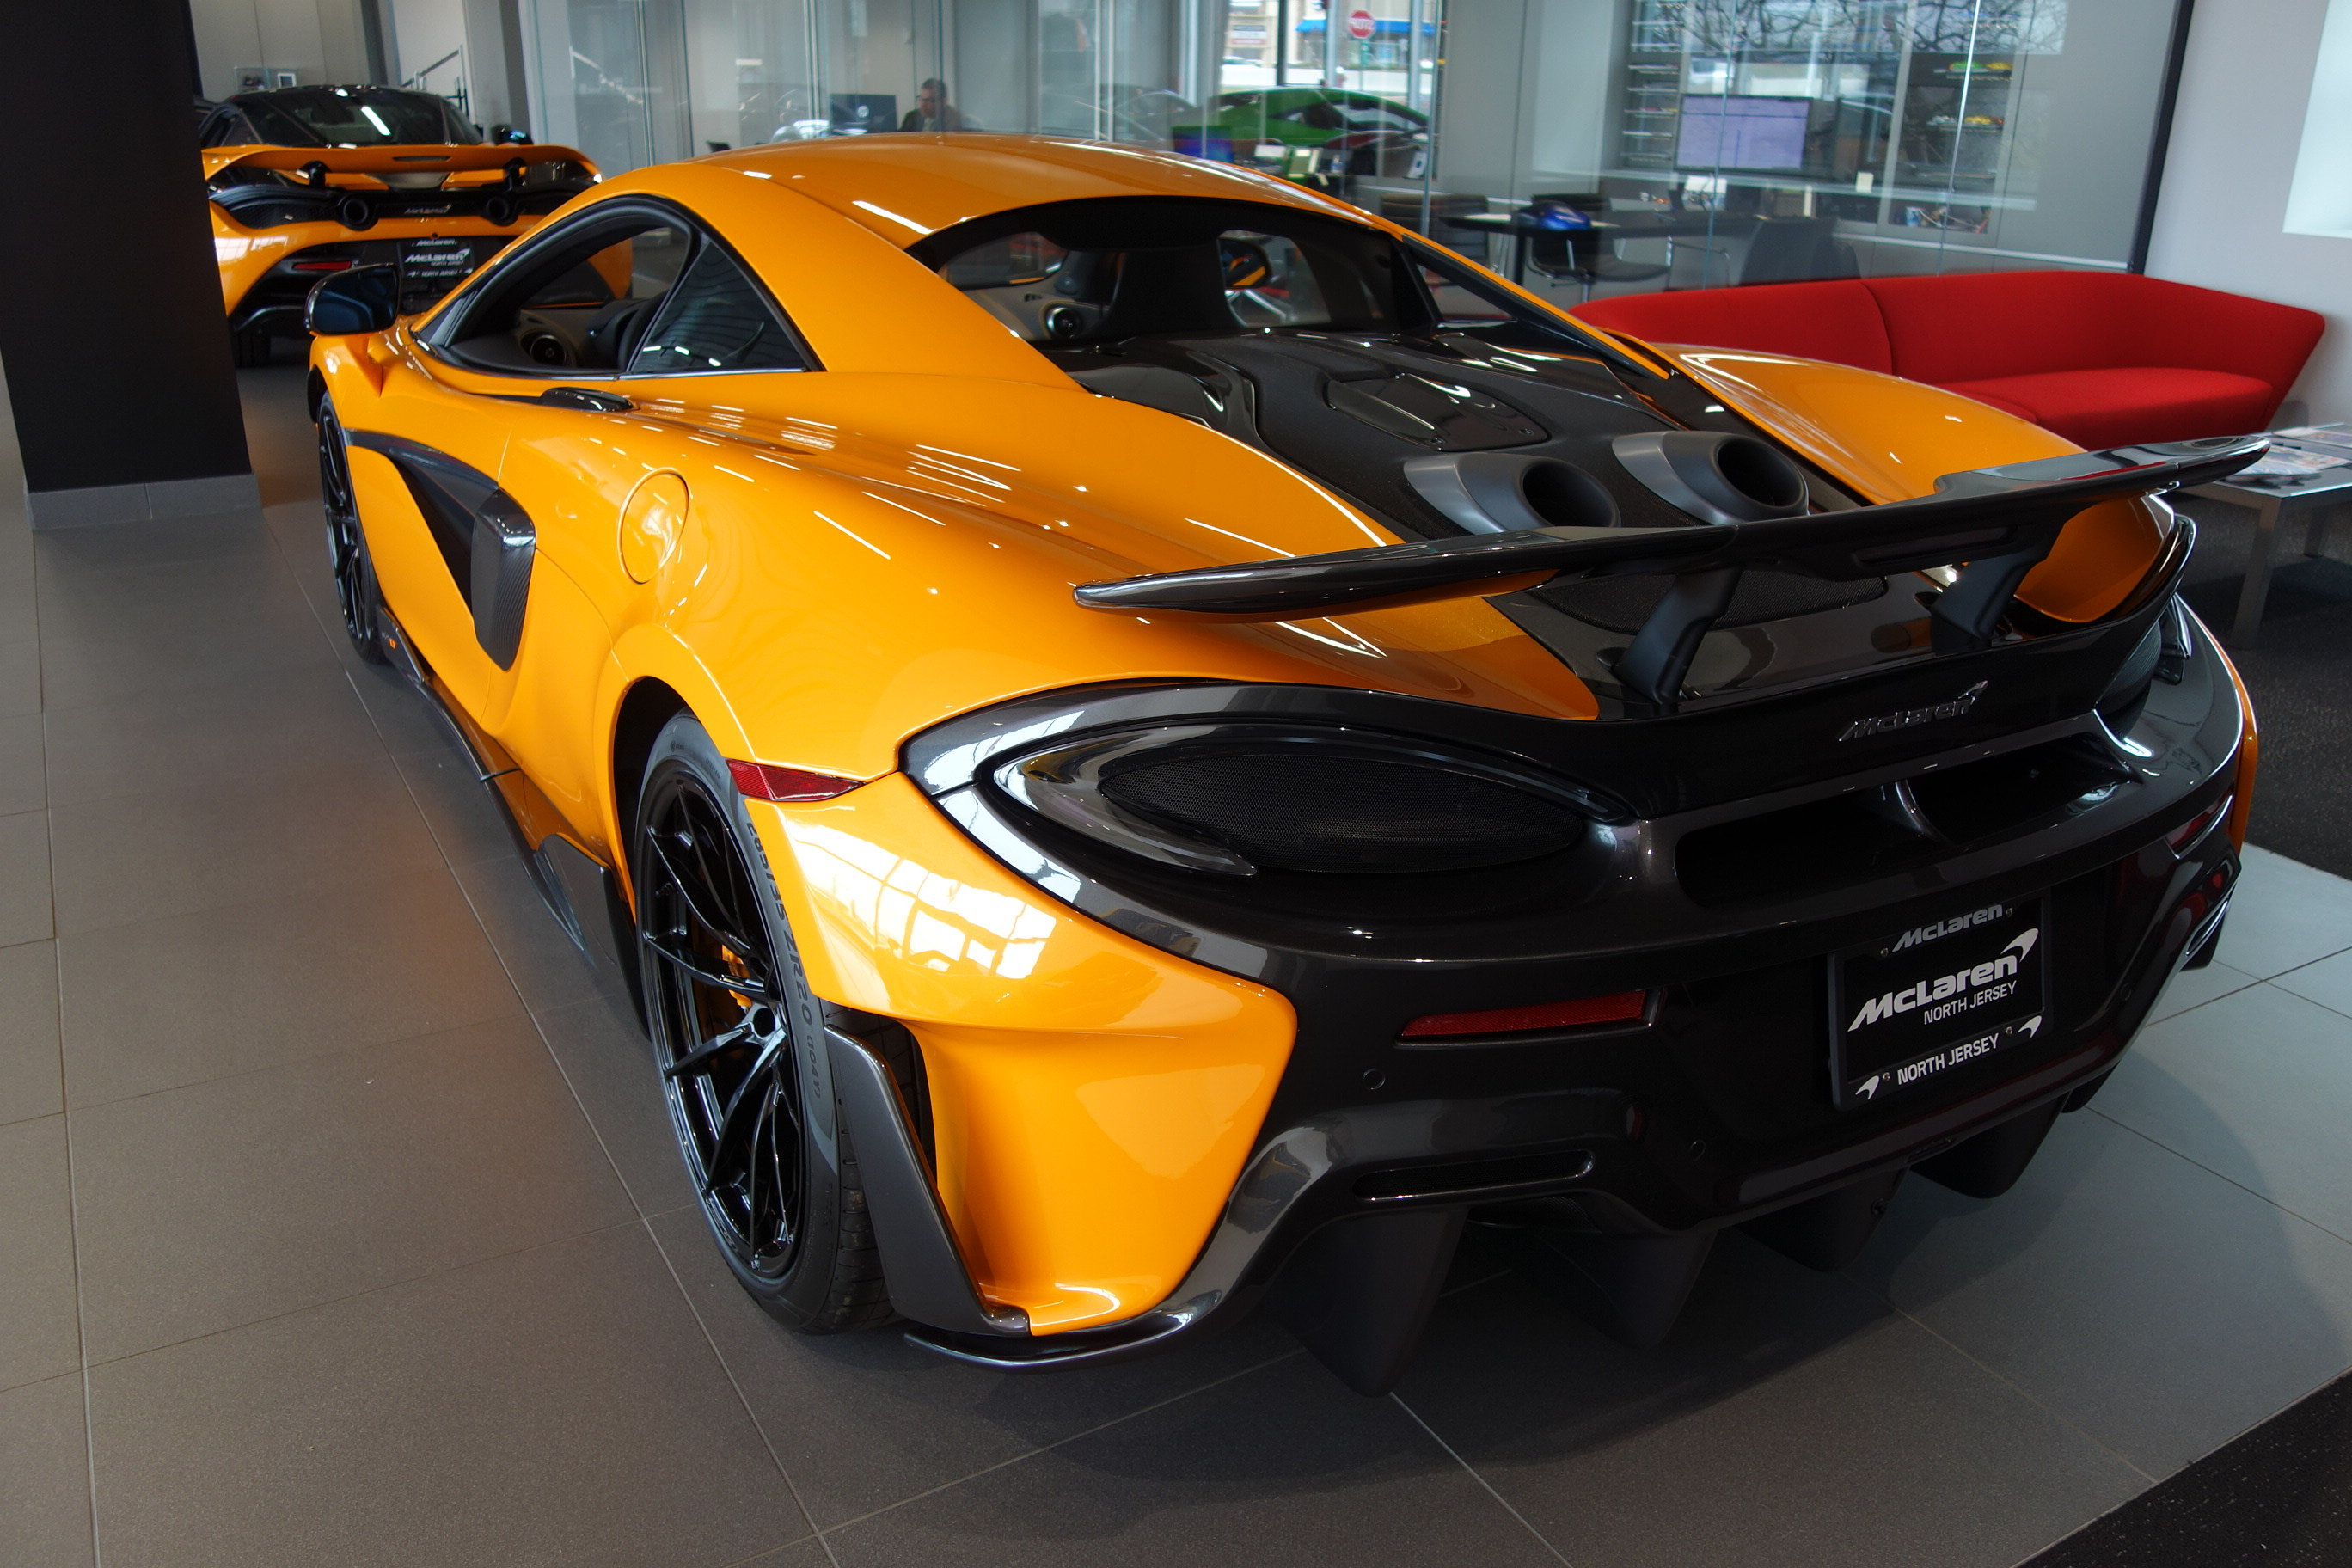 2019 Papaya Spark McLaren 600LT 3.8L V8 Twin Turbocharged Engine Coupe Automatic